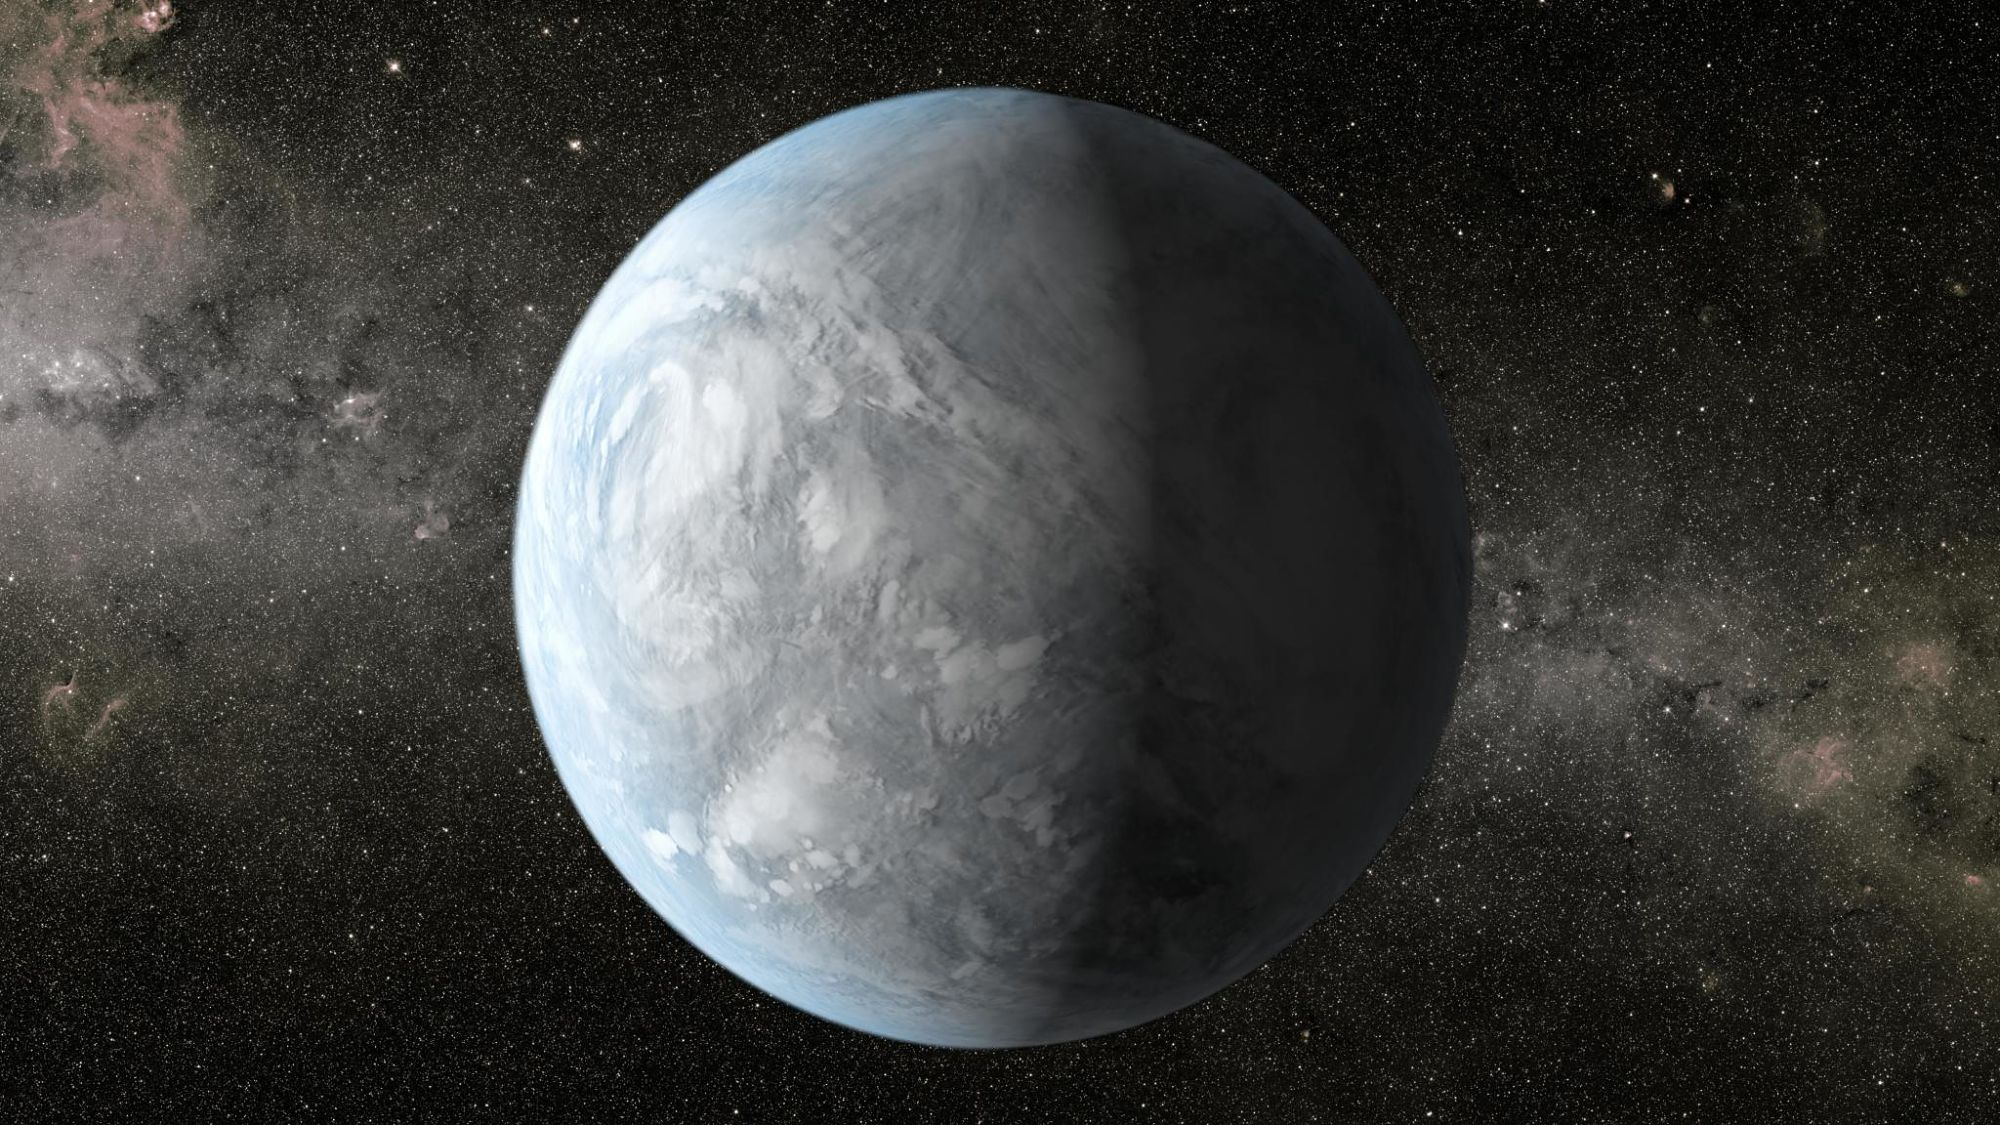 An artist's concept depicting Kepler-62e, a super-Earth-size planet in the habitable zone of a star smaller and cooler than the sun, located about 1,200 light-years from Earth in the constellation Lyra. Image: NASA/Ames/JPL-Caltech